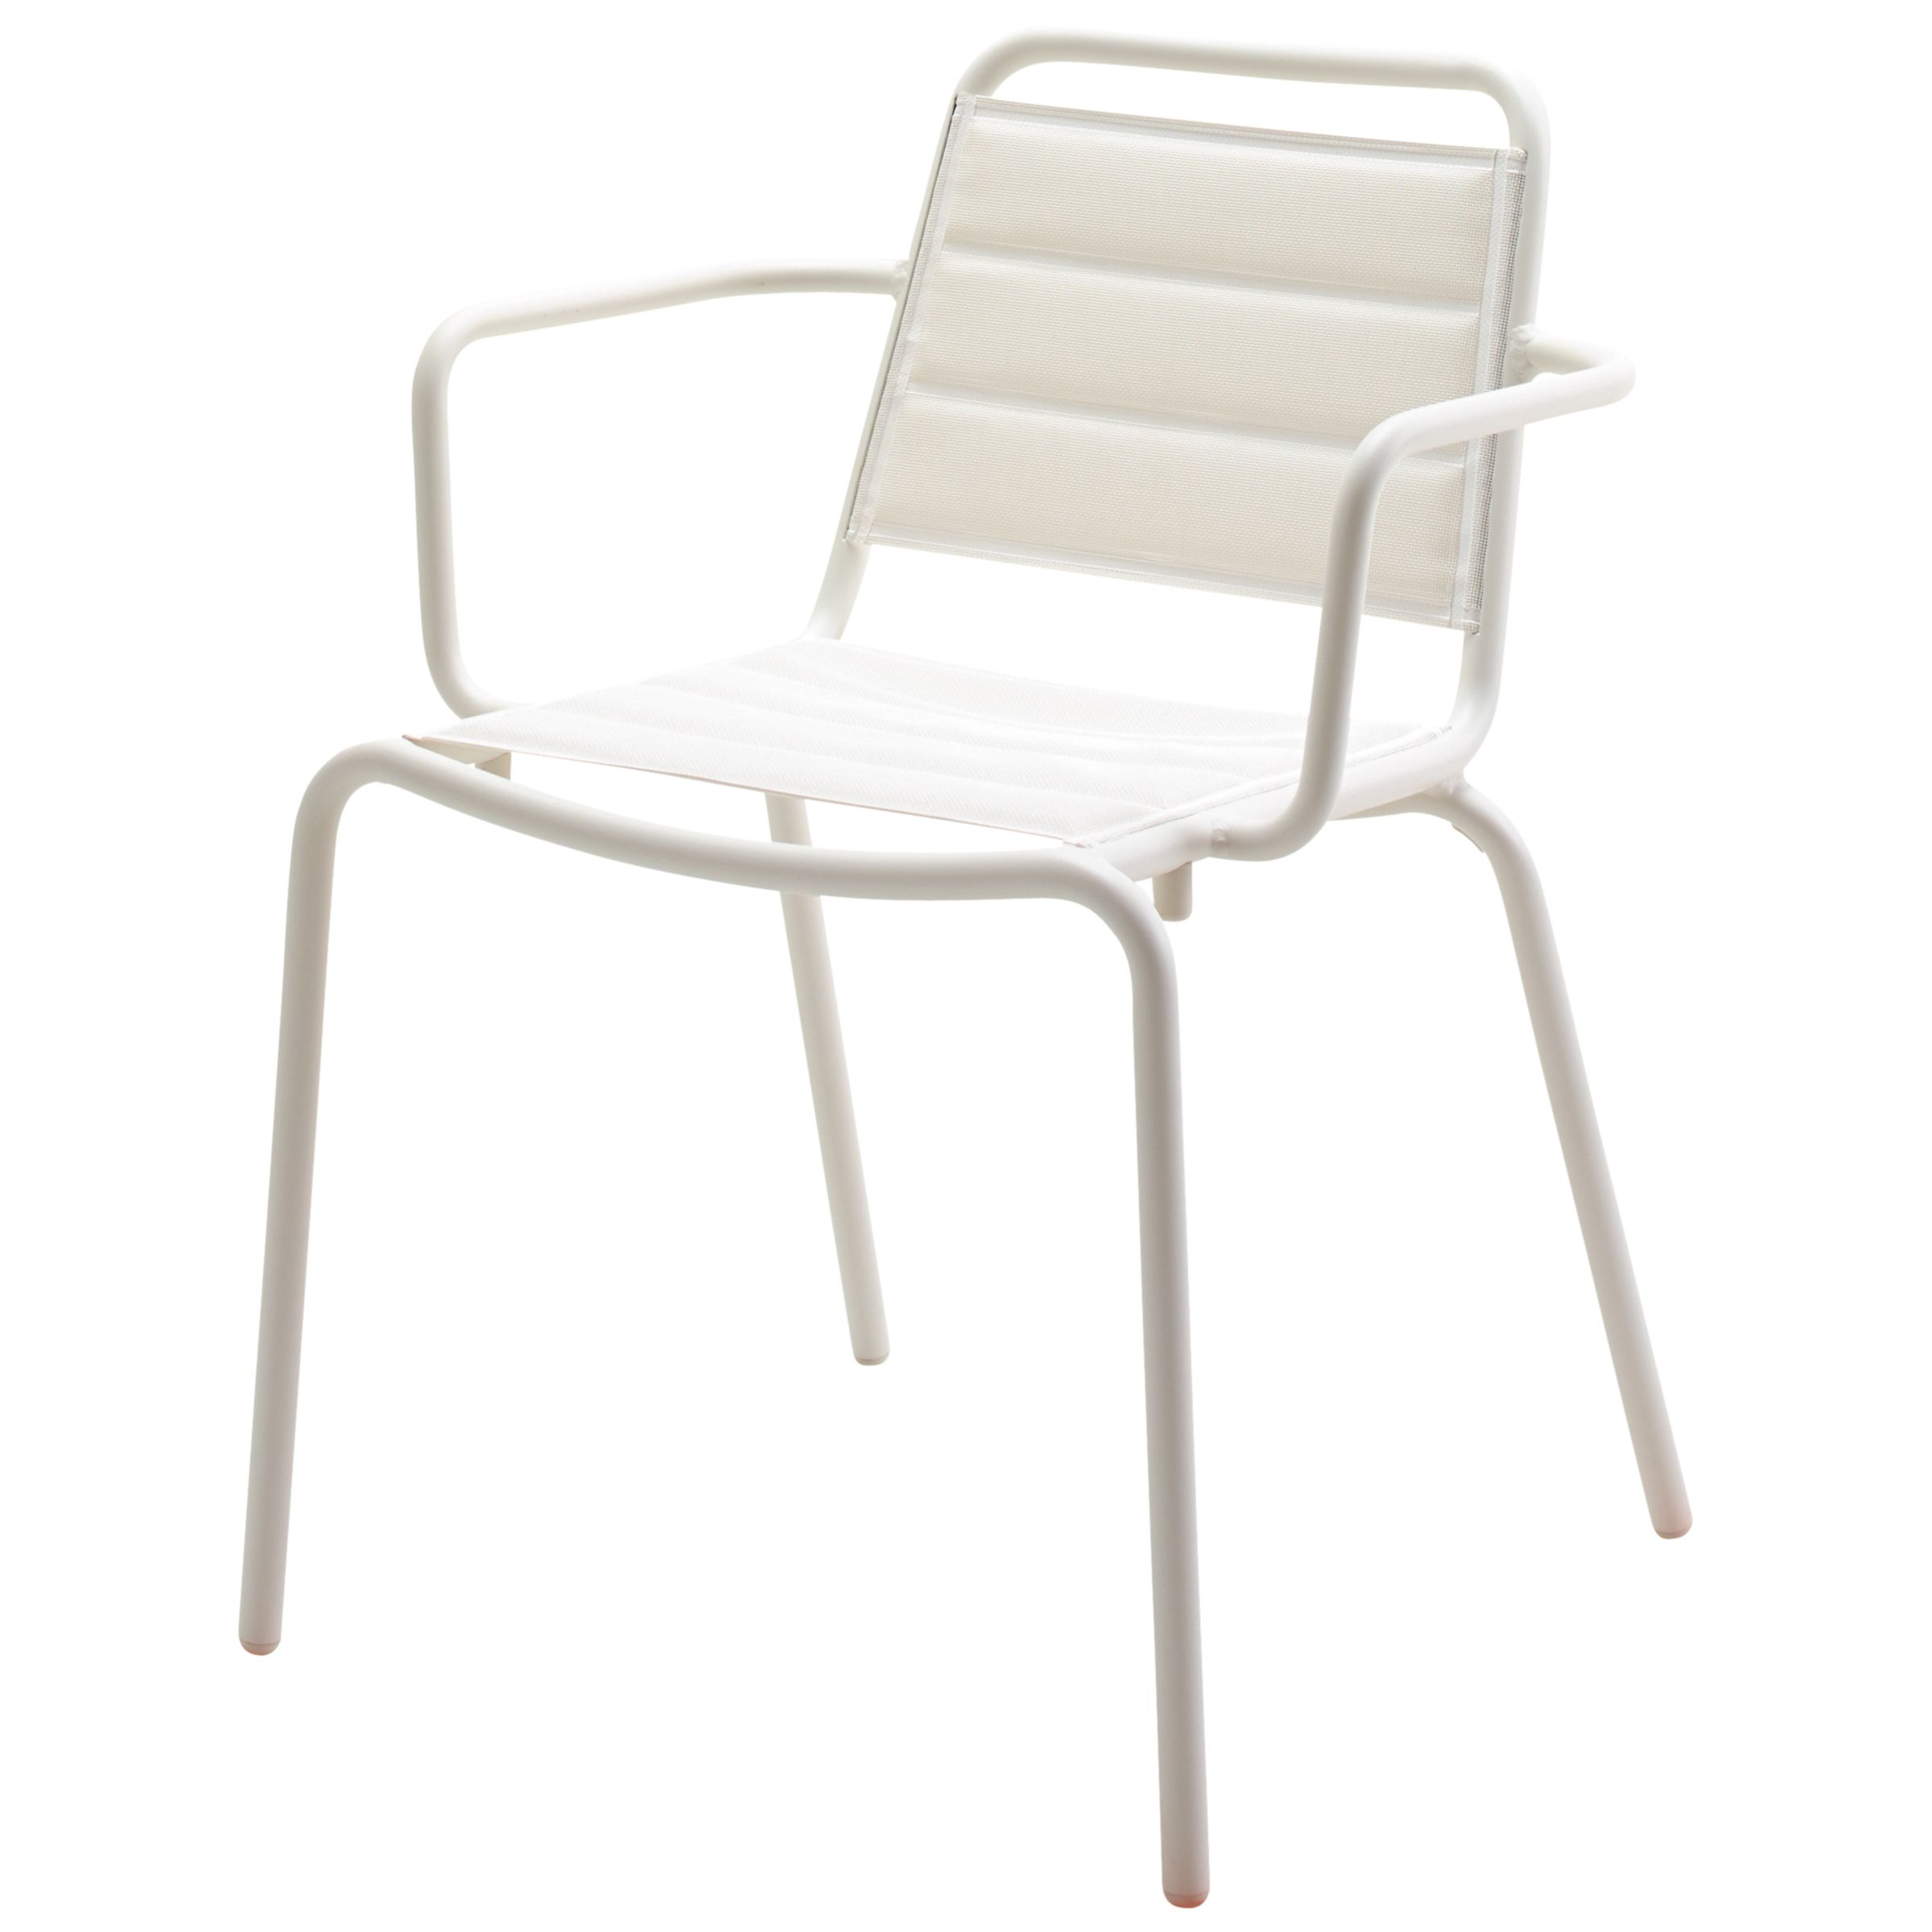 Gloster Nomad Padded Sling Stacking Armchair, White